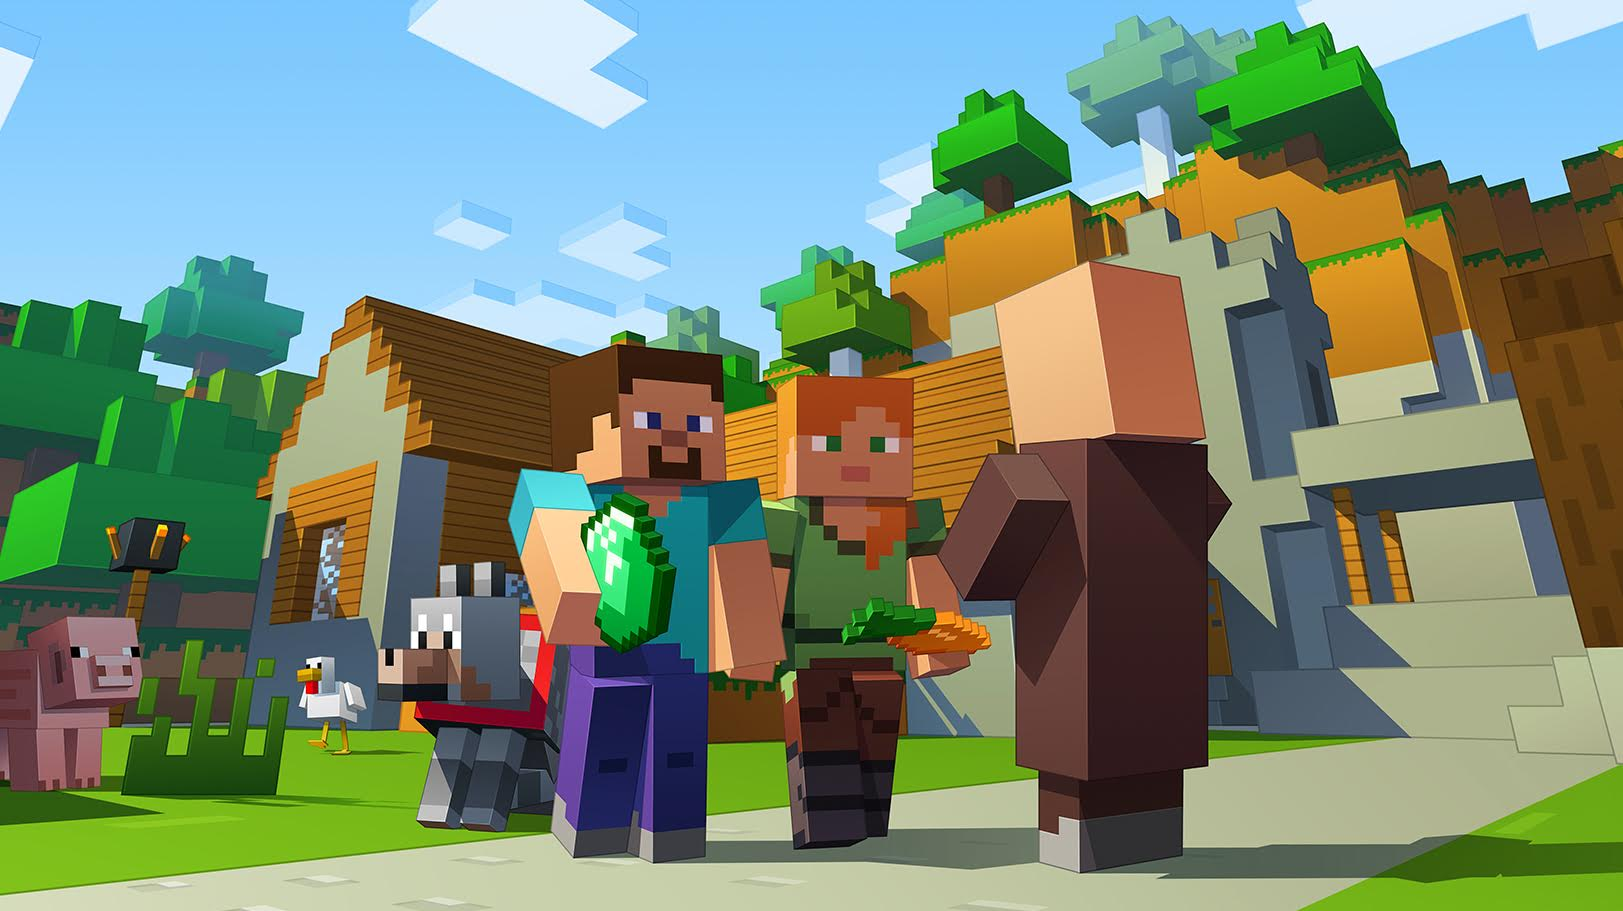 Minecraft Has Now Sold More Than 100 Million Copies